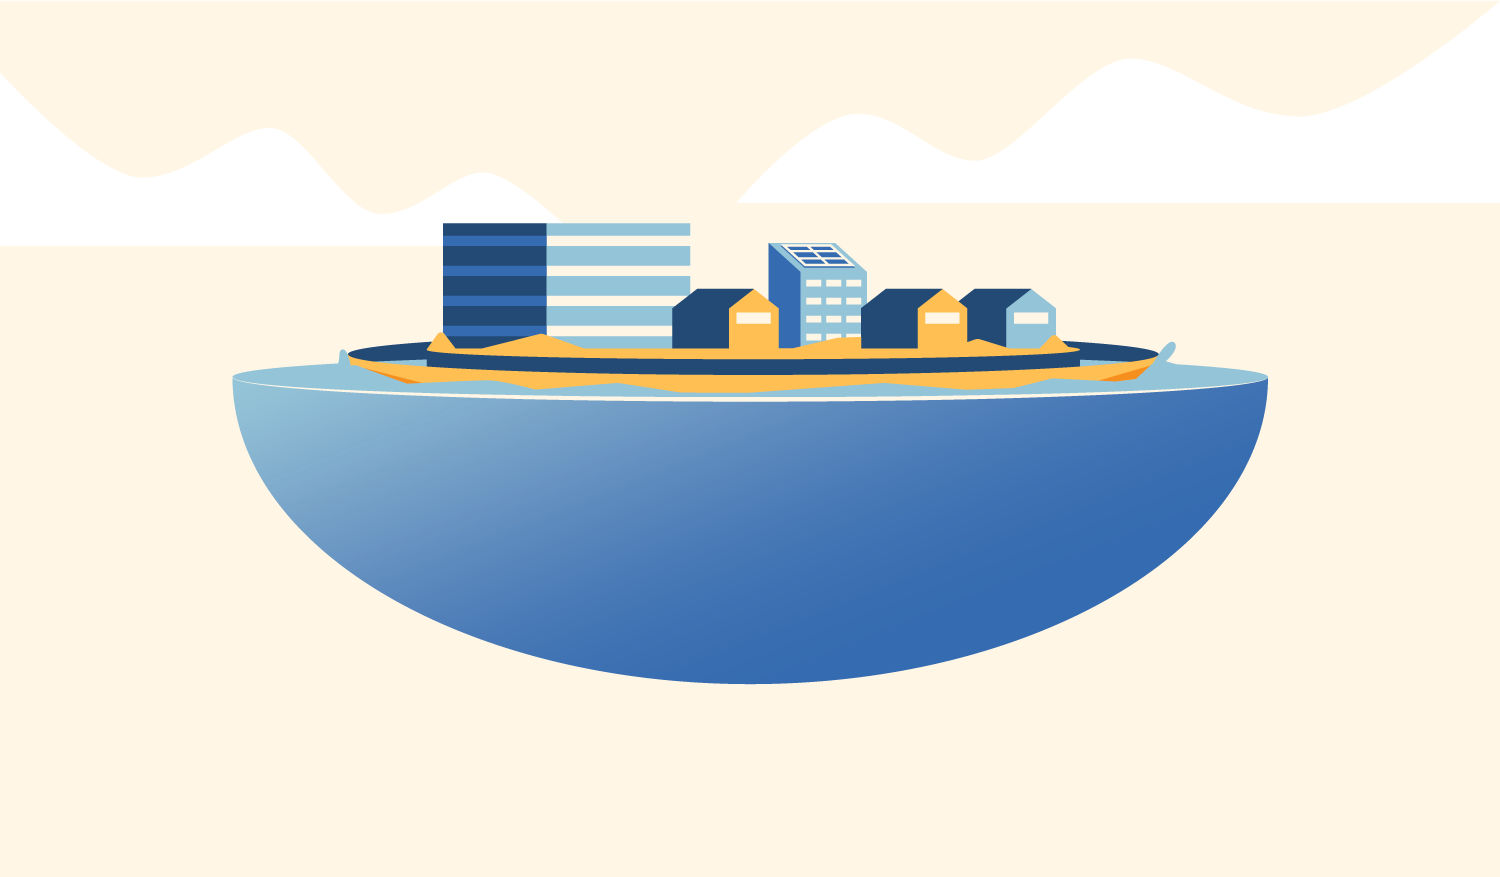 Floating cities would be protected from natural disasters due to their materials, breakwaters, and low center of gravity.